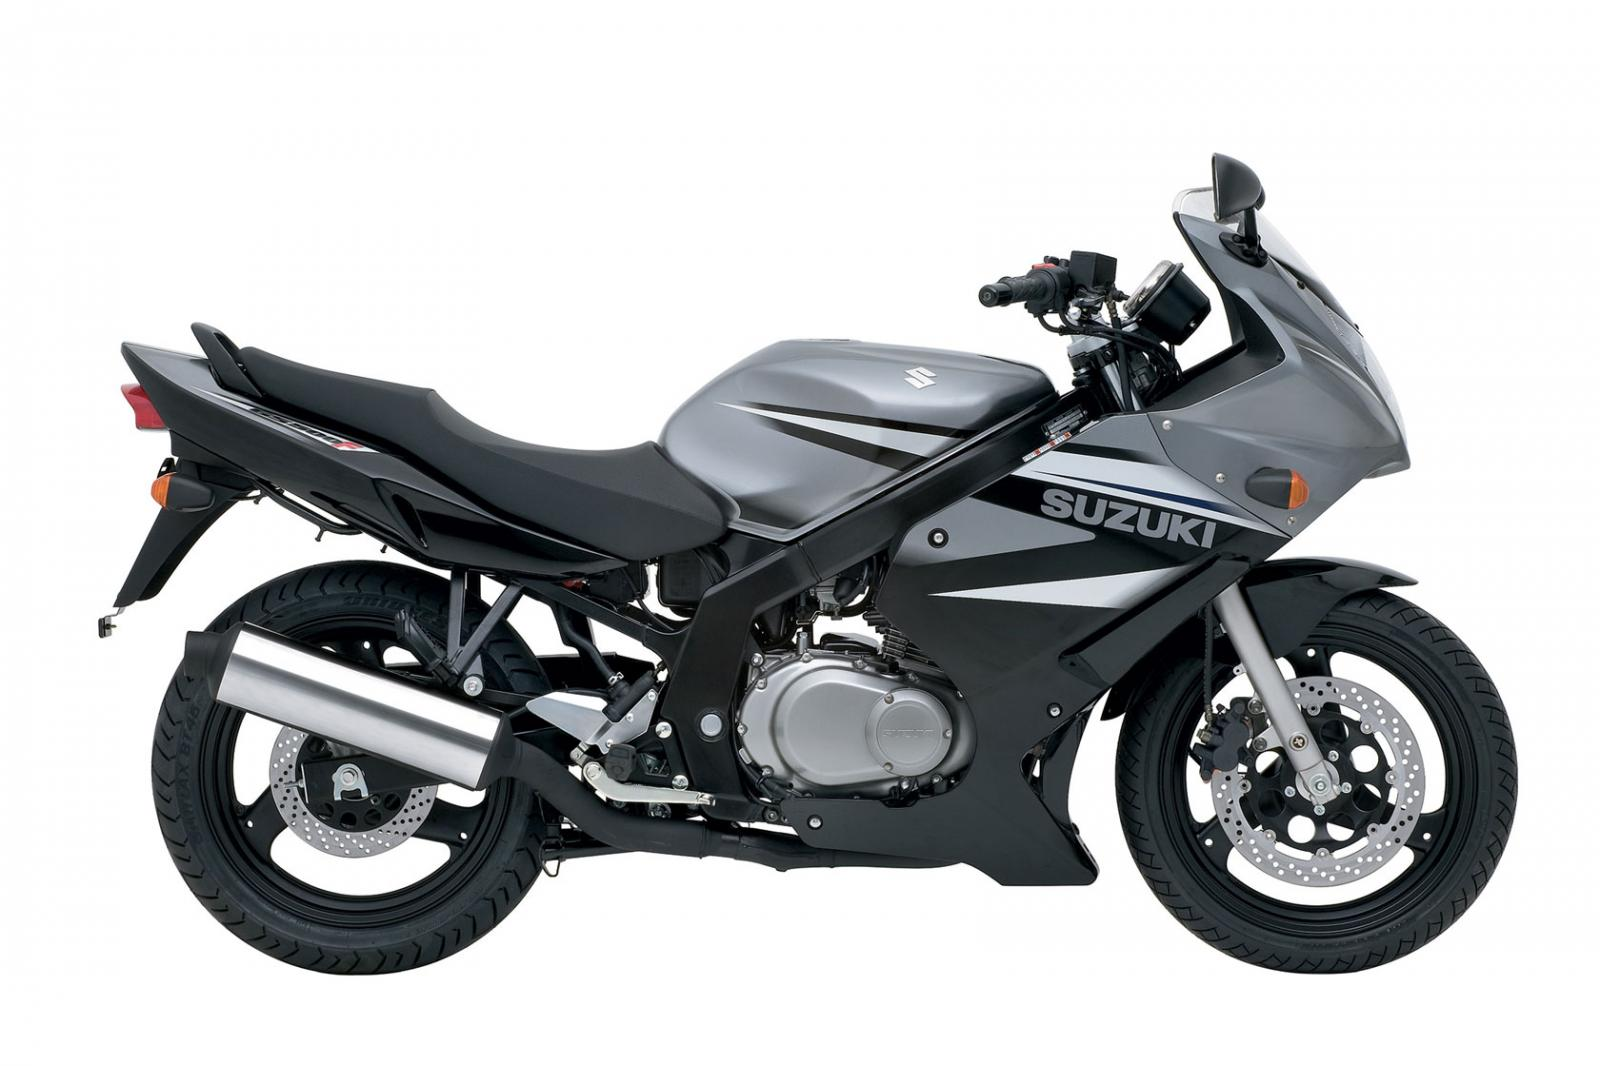 Used Suzuki GS500F 2011 For Sale ⋆ Motorcycles R Us